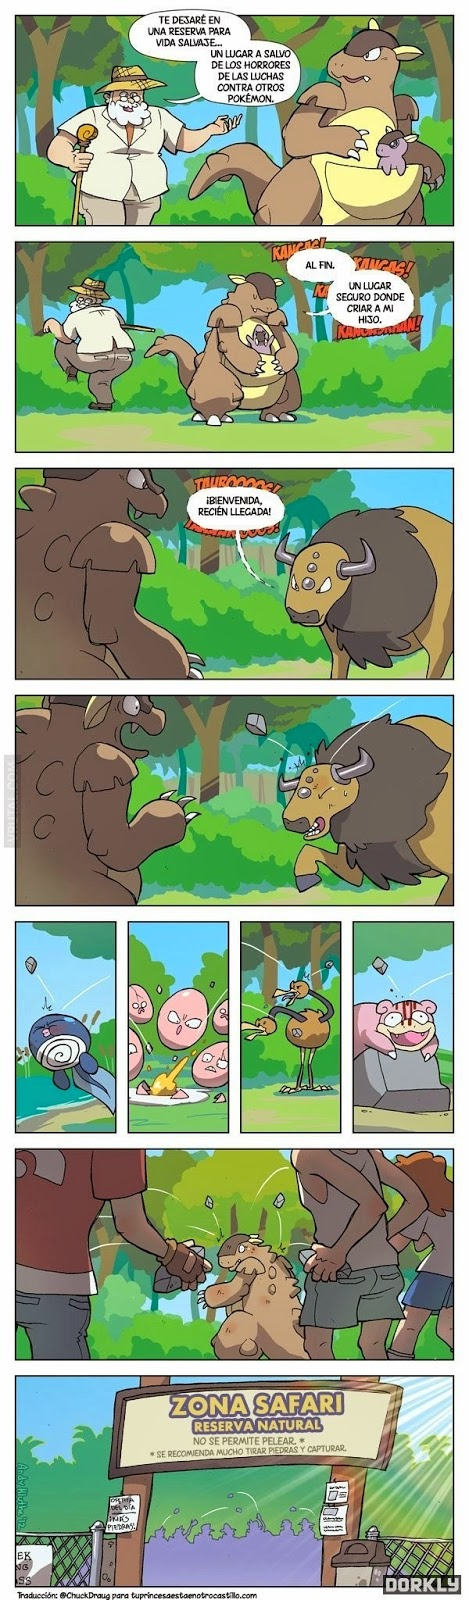 Lógica Pokemon: 'Zona safari'